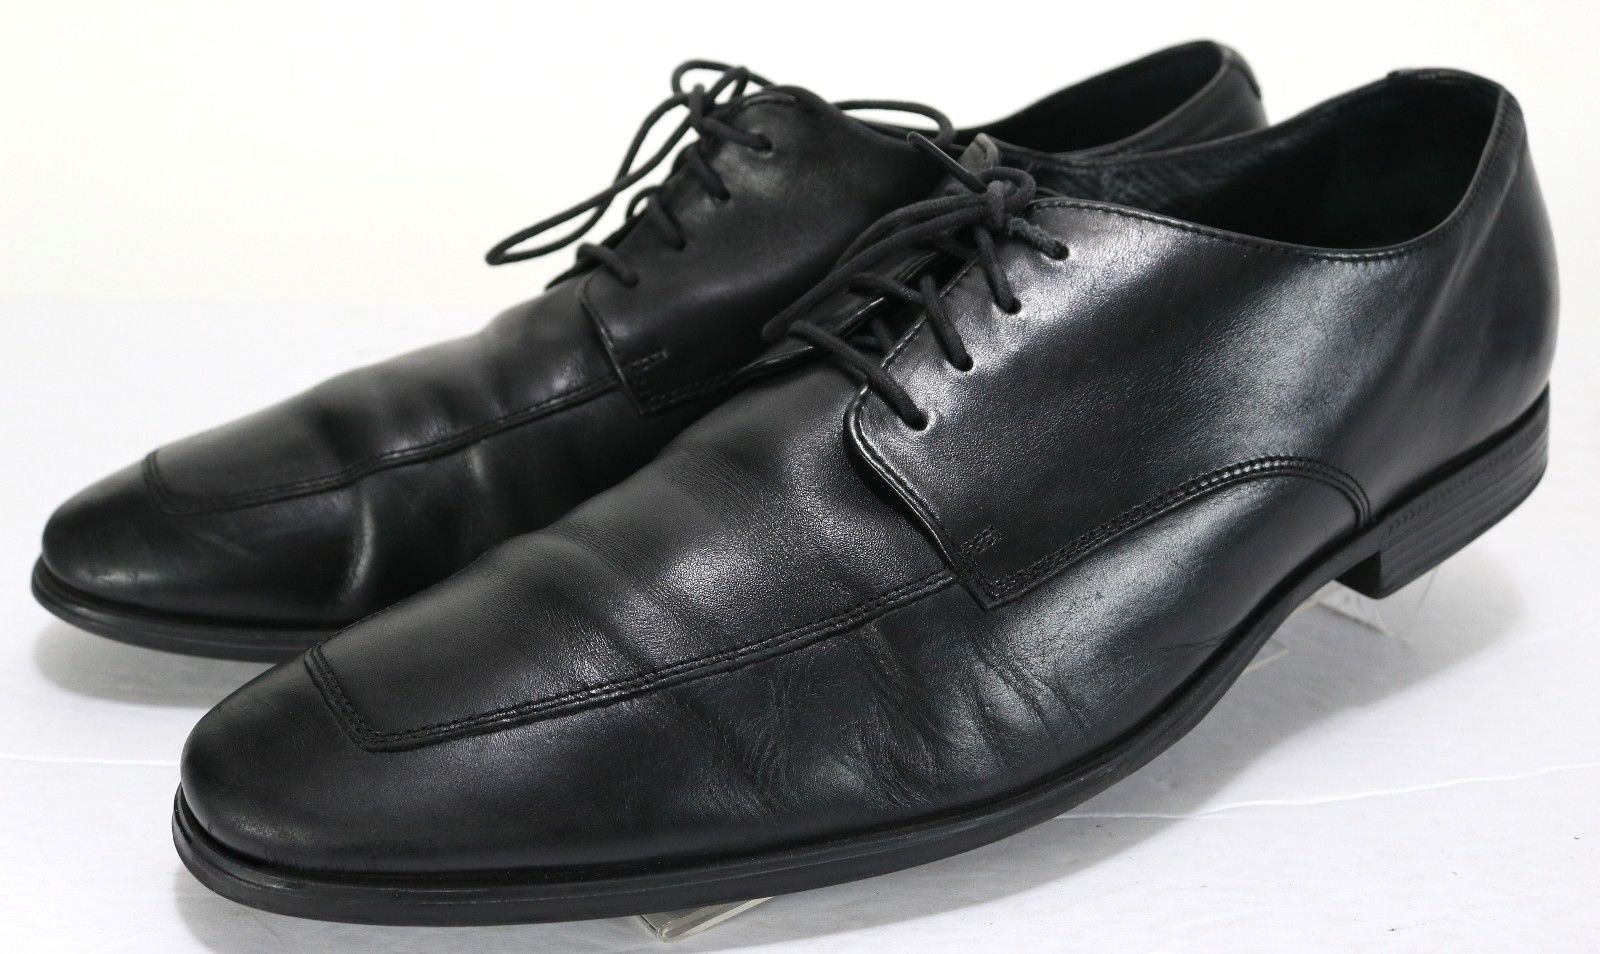 Cole Haan NIK Air  180 Adams Apron Derby Men's Dress shoes Size 12 Leather Black